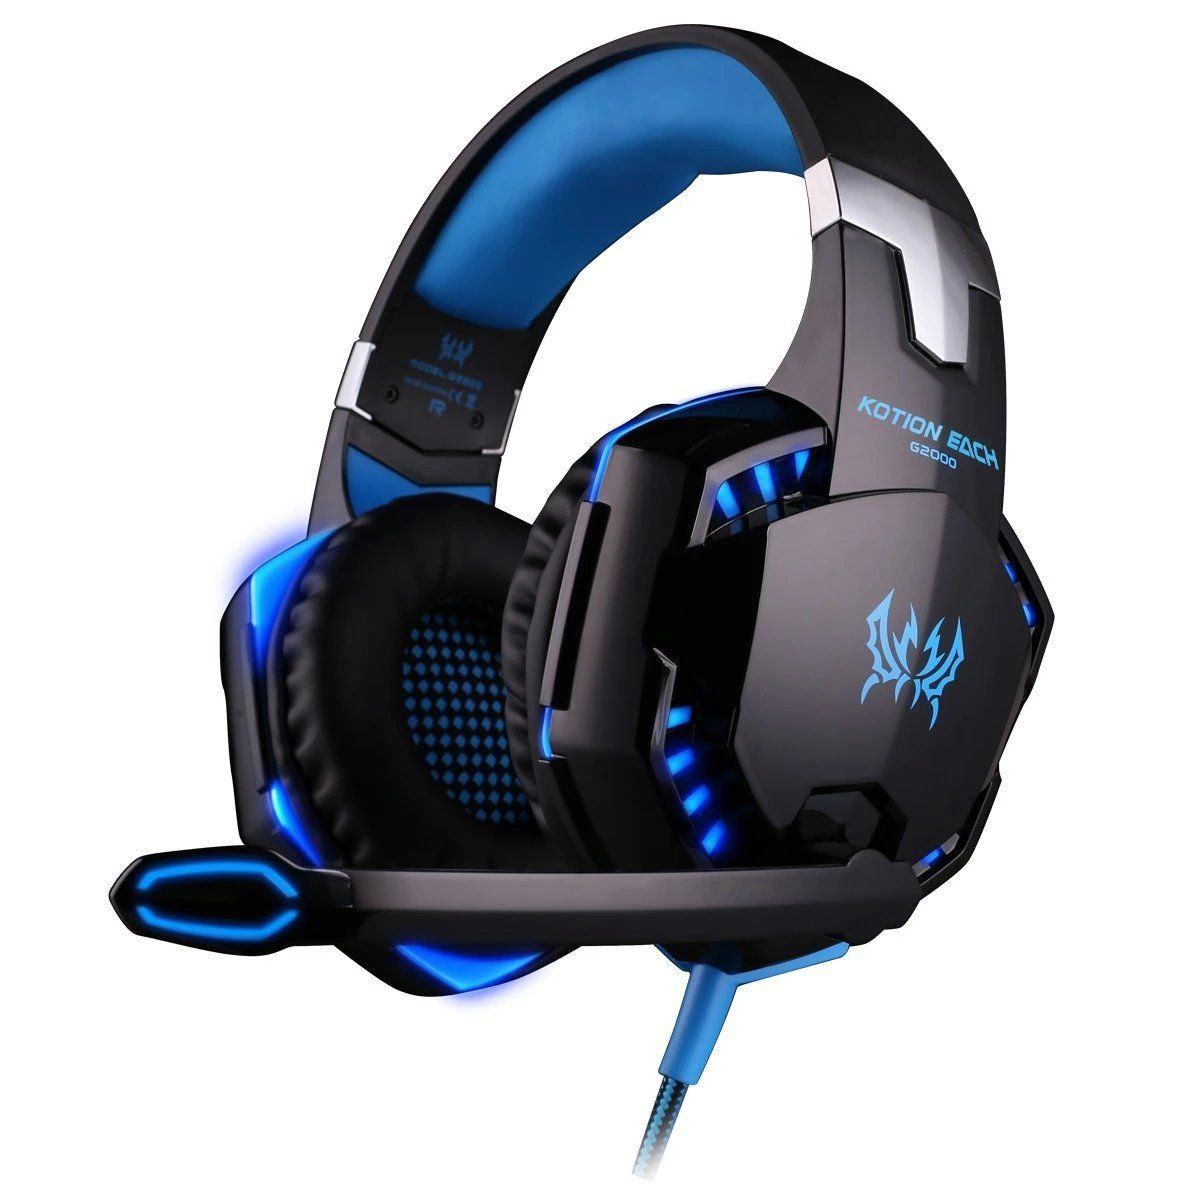 Kotion Each G2000 Over Ear Gaming Headphones with Mic and LED (Black/Blue)